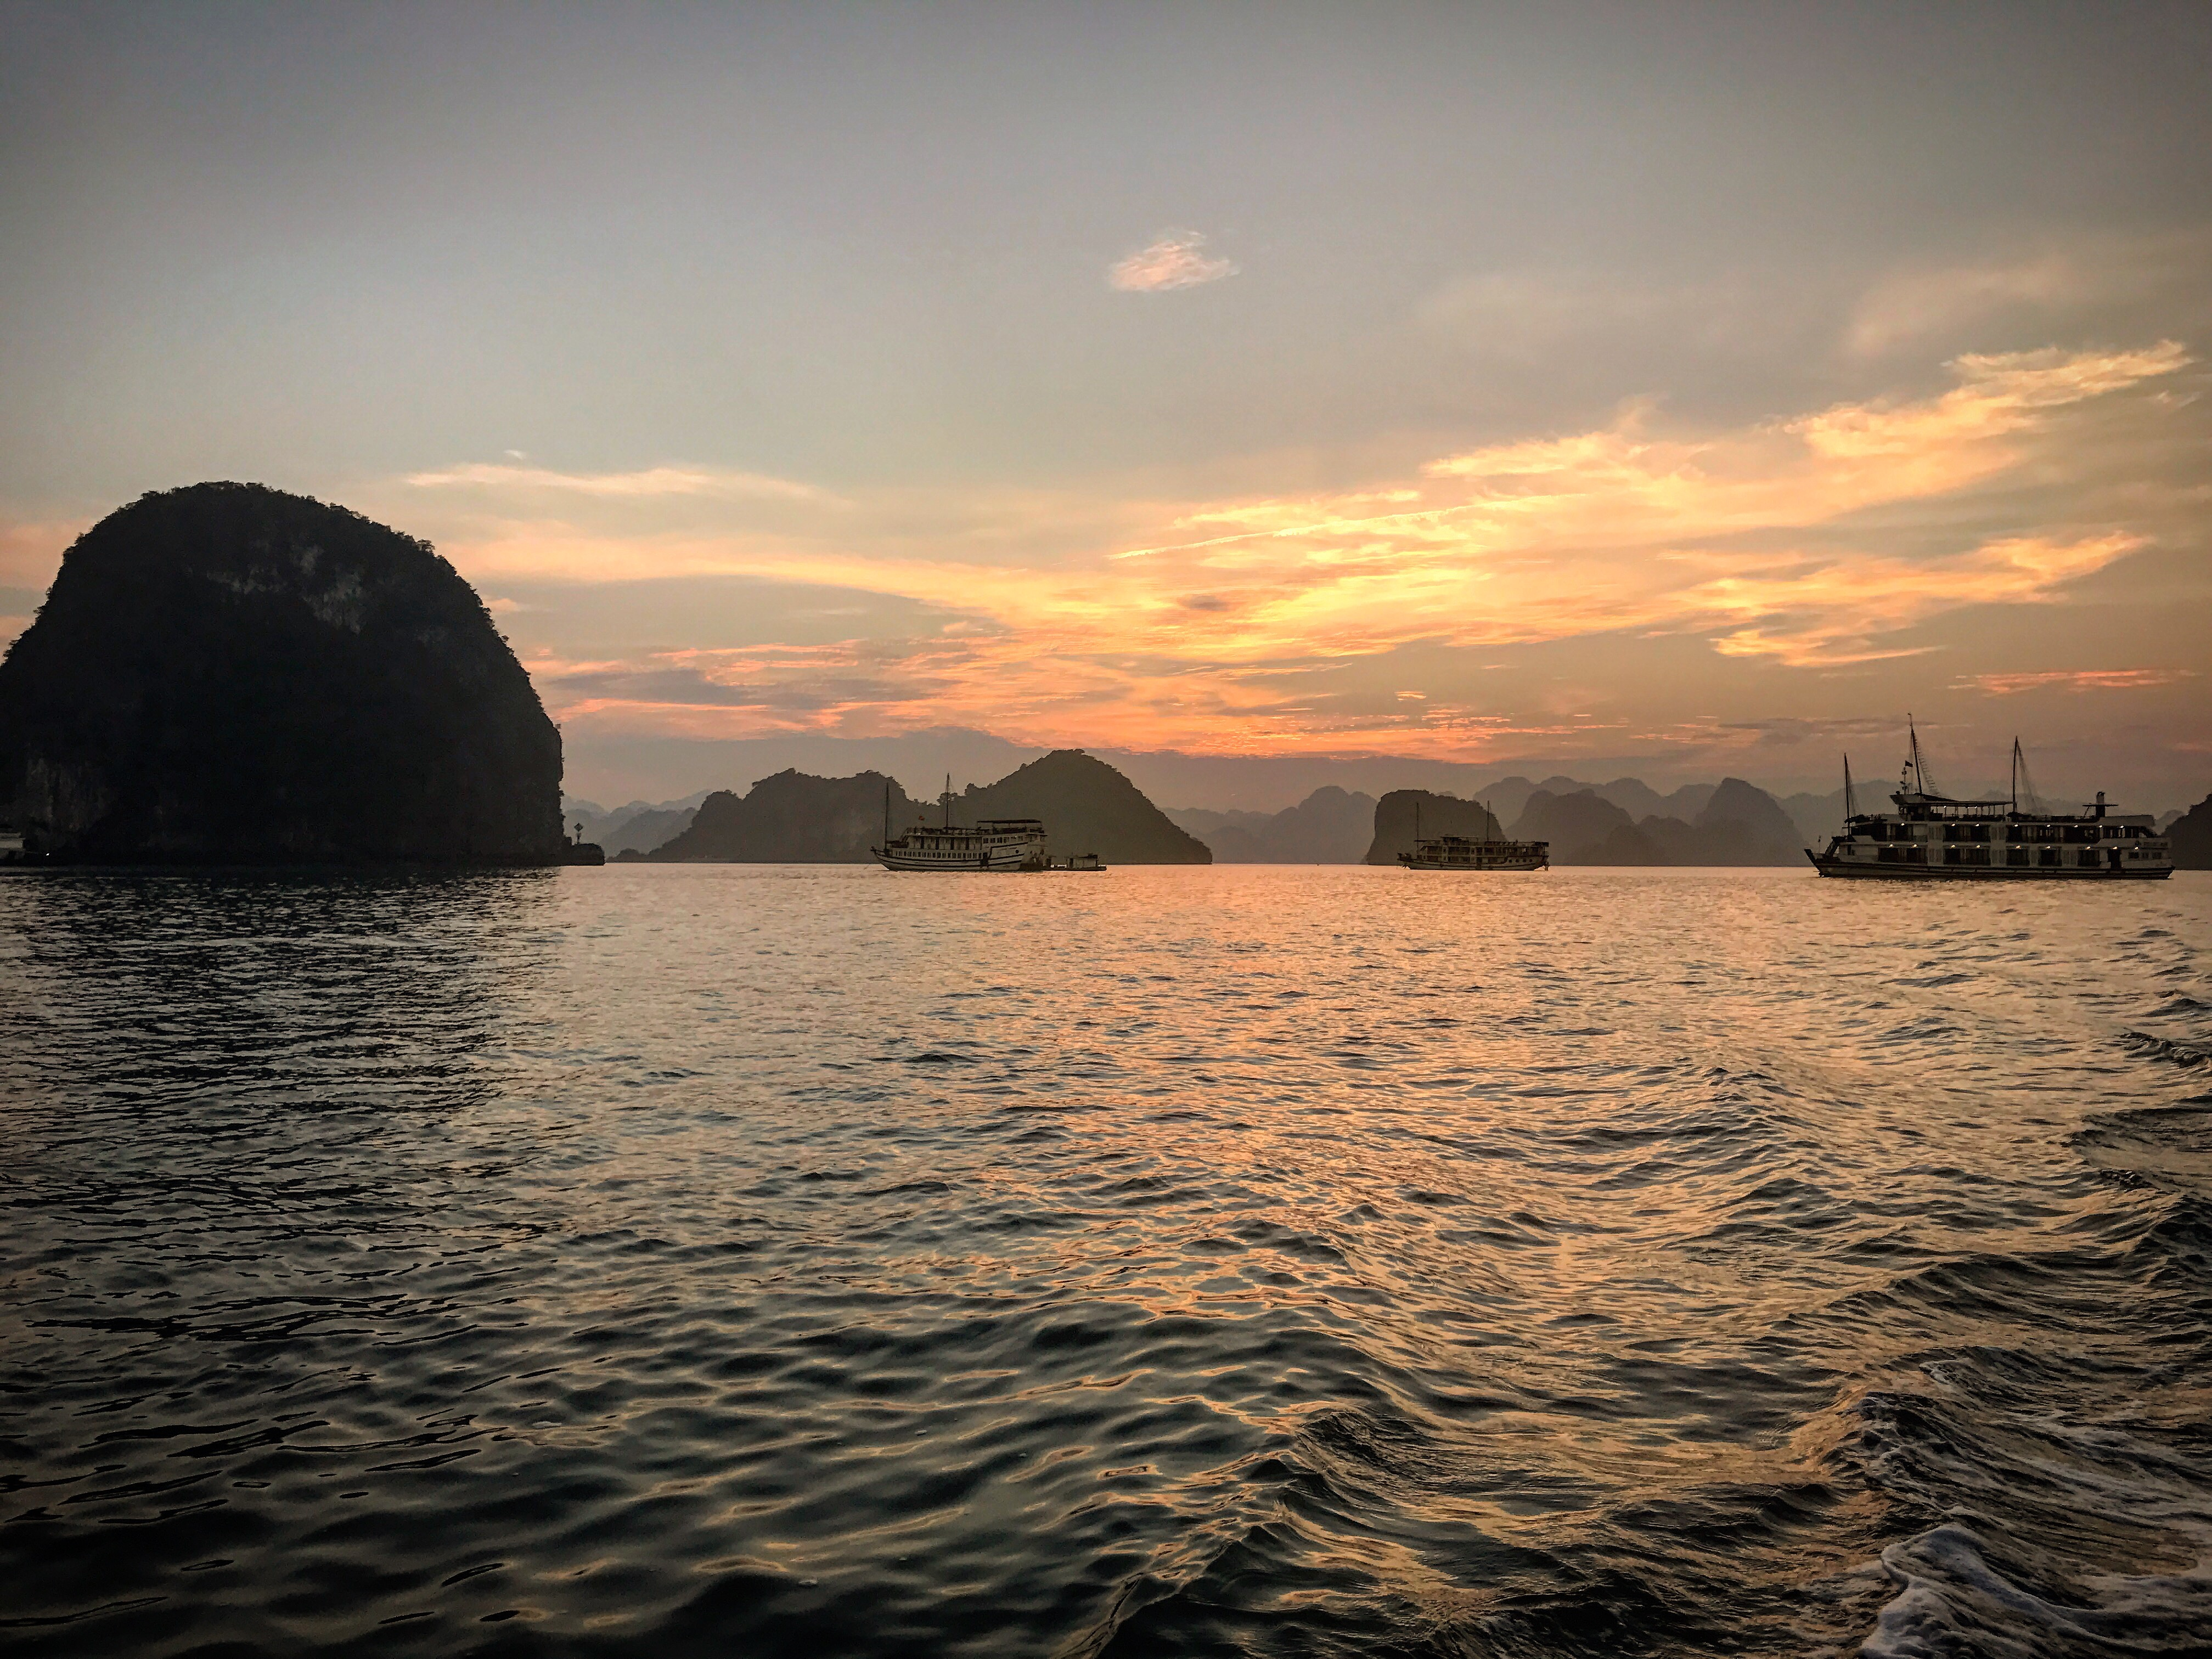 Another Sunset at Halong Bay Vietnam